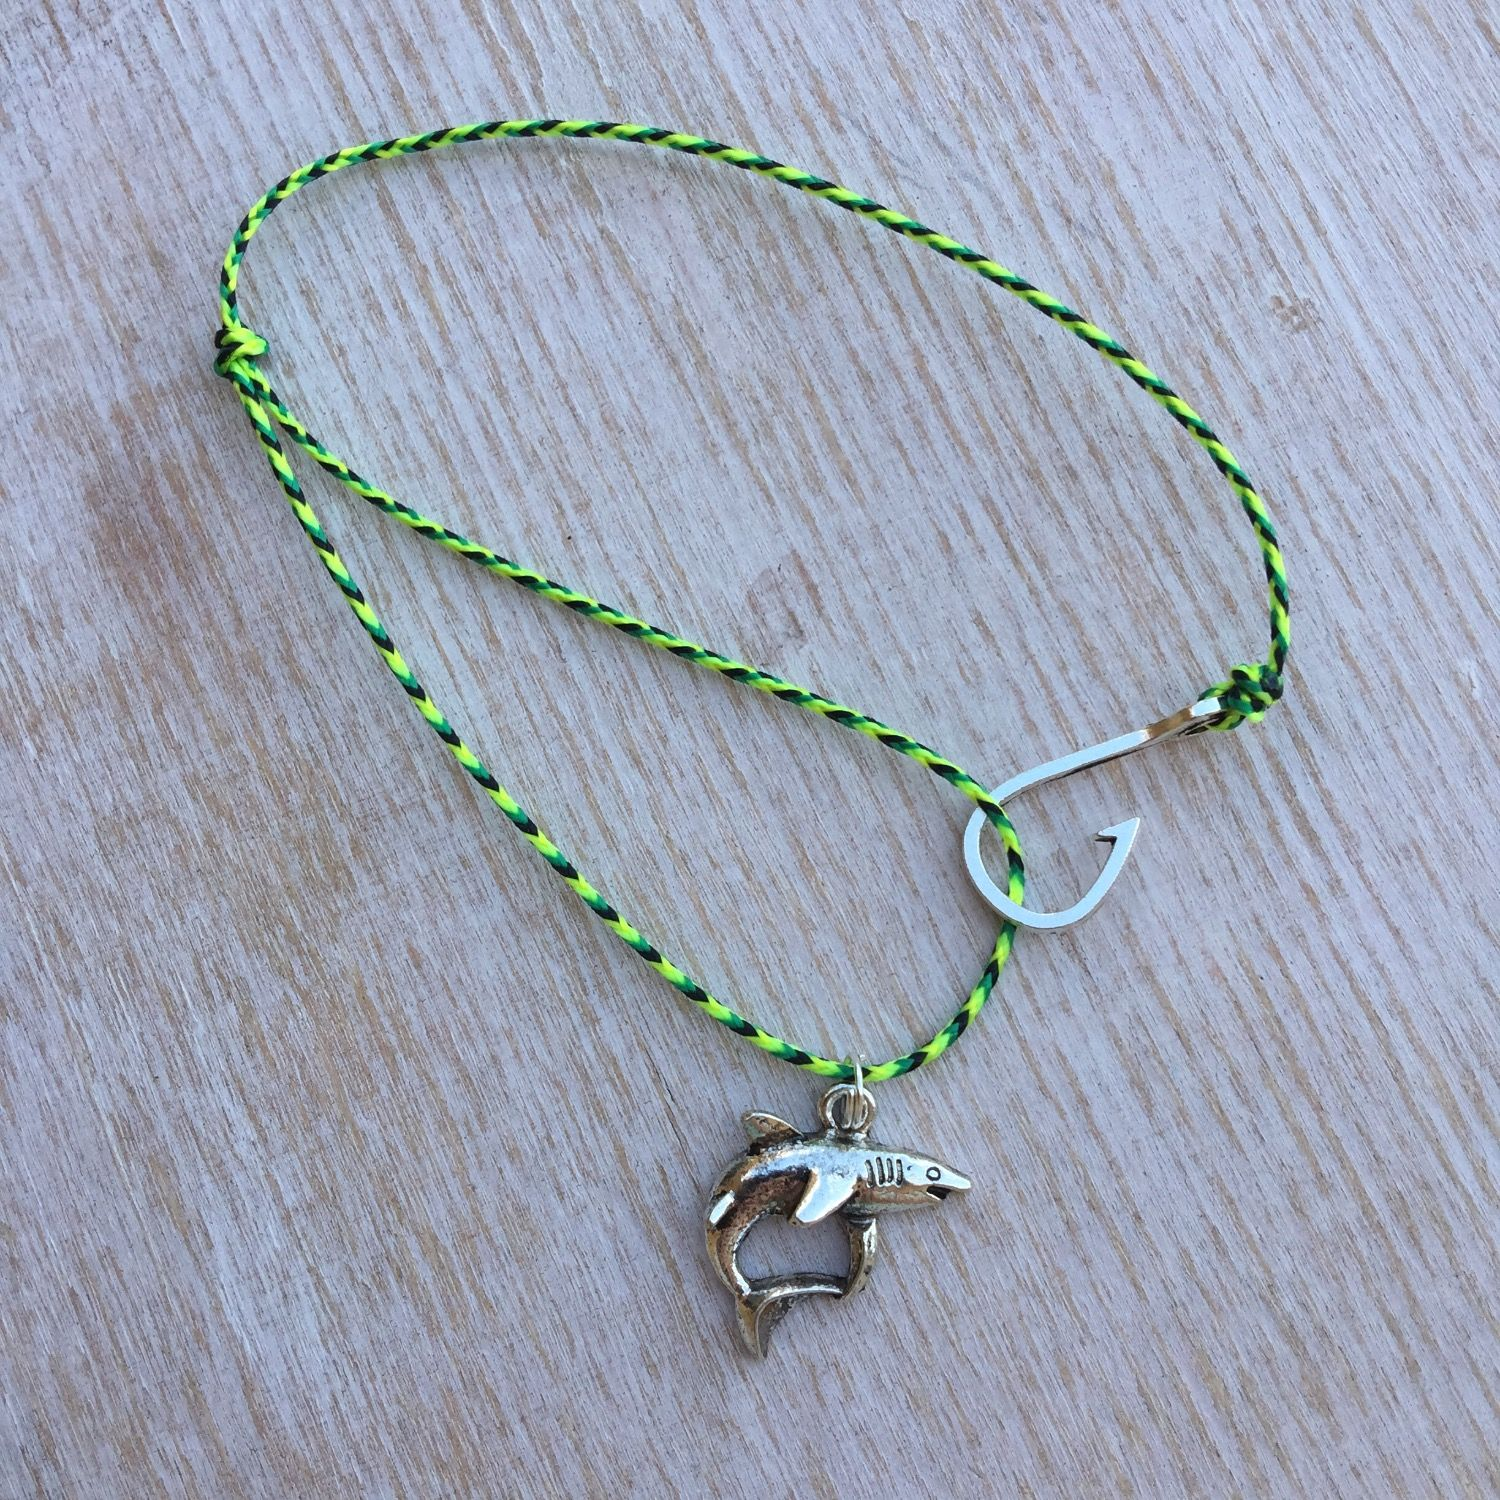 jewelry in micro paracord up clasp fish a by bull hook and nautical upyouranchor anklet multi color from shark with pin